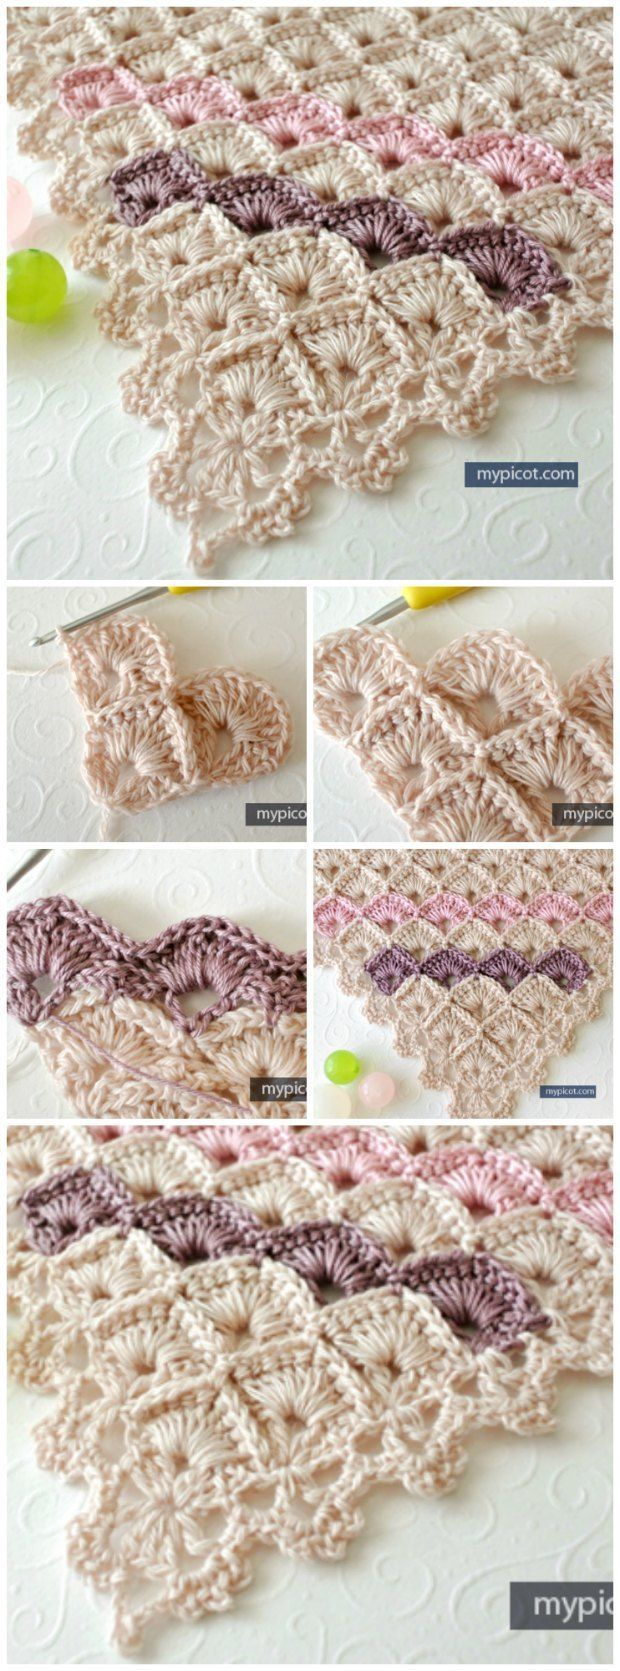 Crochet Triangle Shawl Box Stitch Pattern - Free Tutorial ...